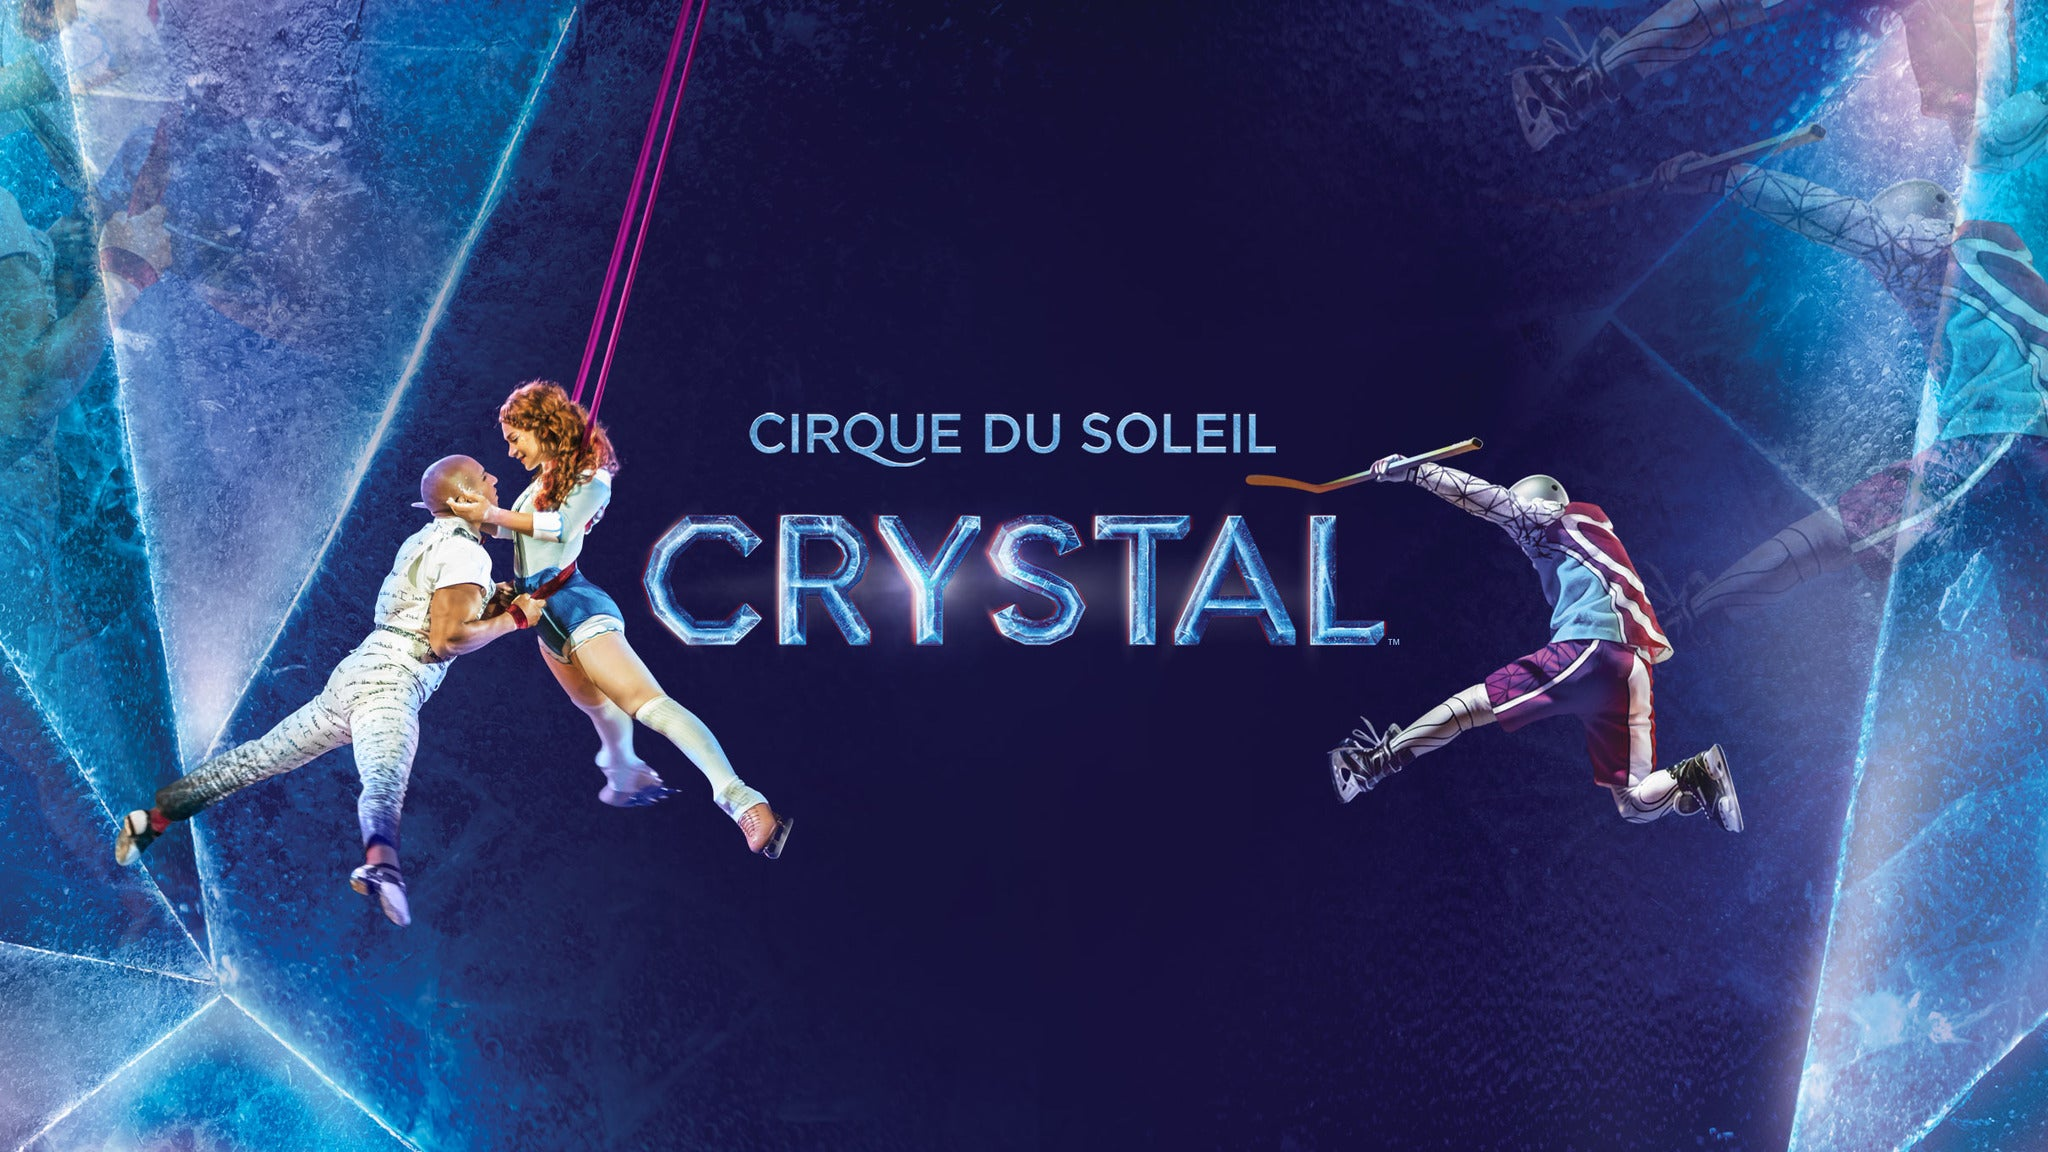 Cirque du Soleil: Crystal at PPL Center